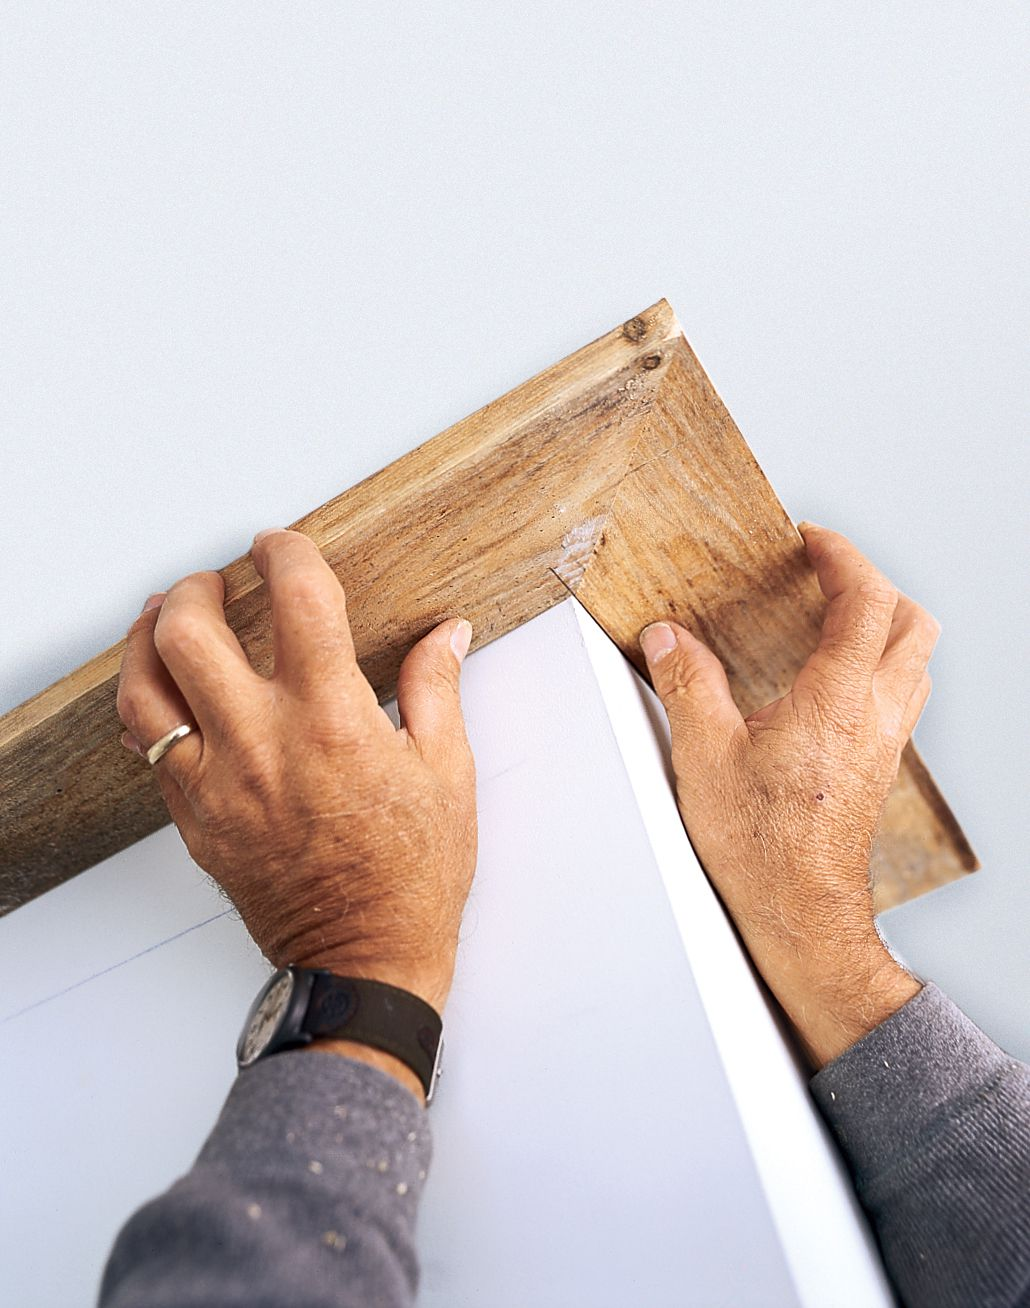 Angle cuts for crown molding